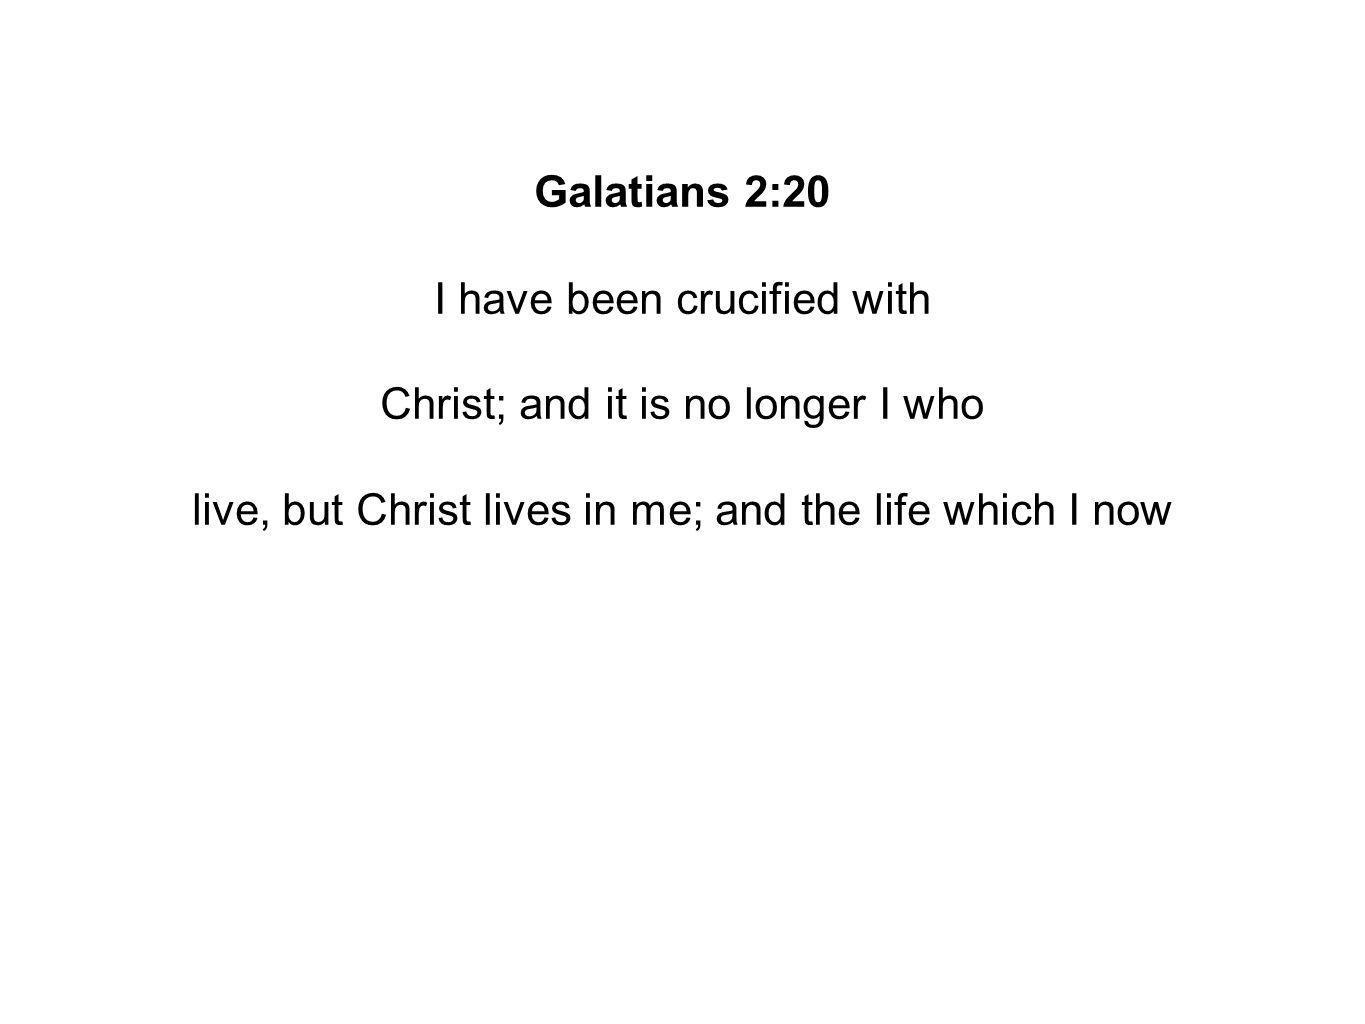 Galatians 2:20 I have been crucified with Christ; and it is no longer I who live, but Christ lives in me; and the life which I now